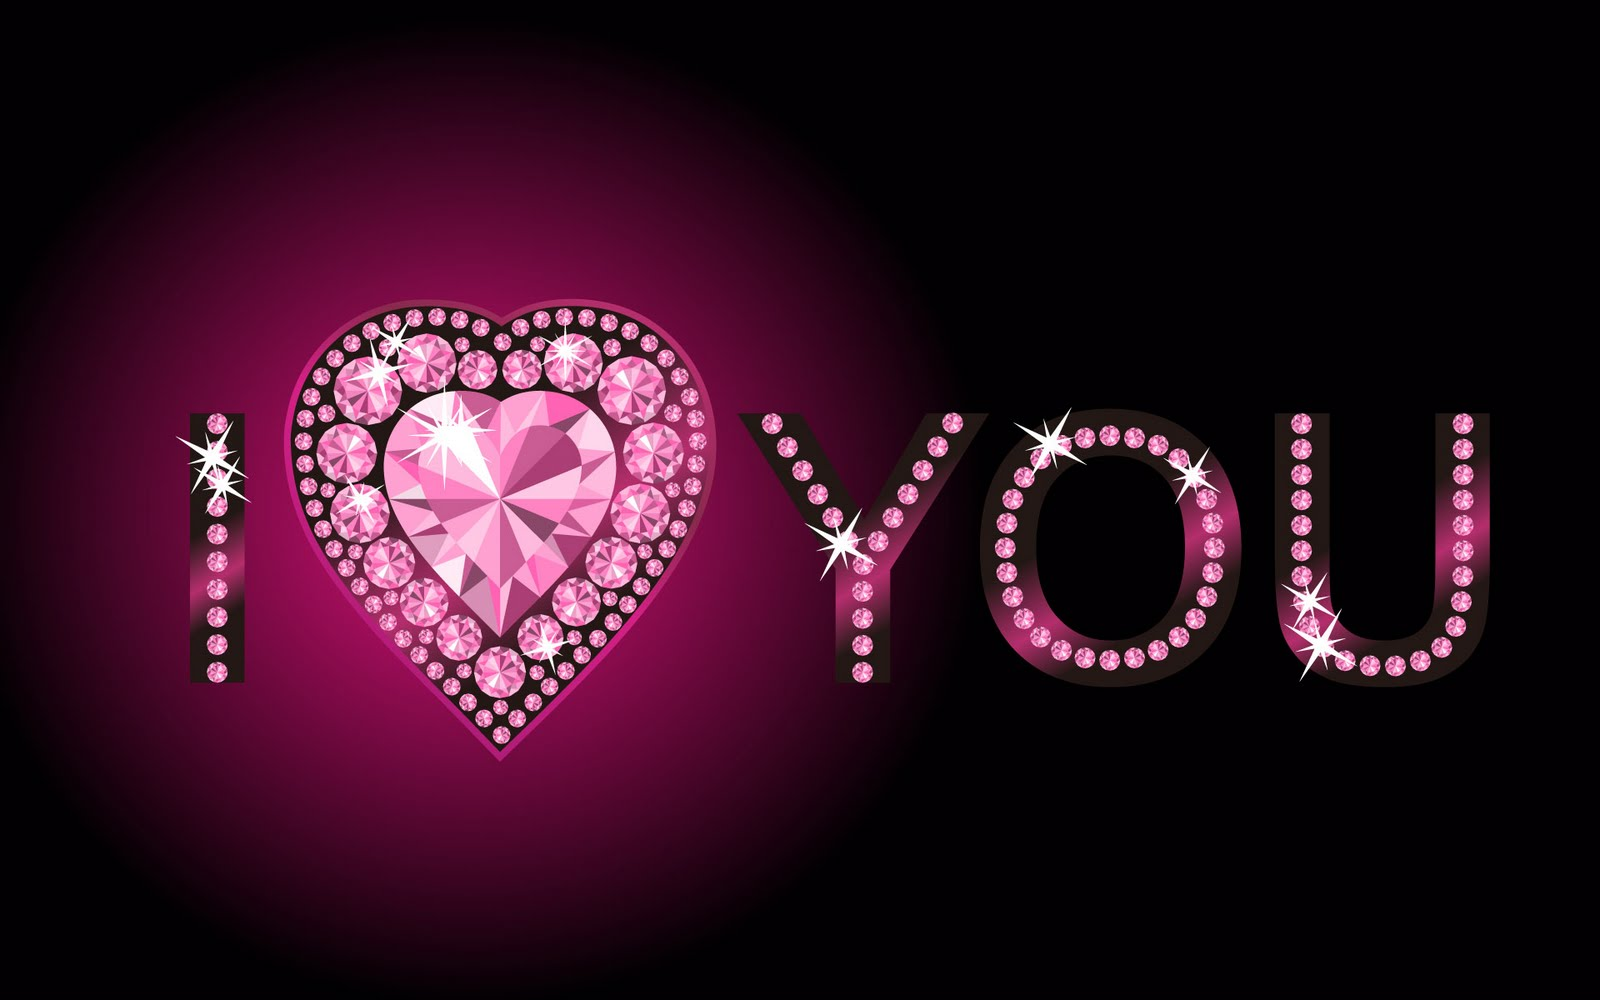 I Love You With Diamond Decoration Quotes Wallpapers